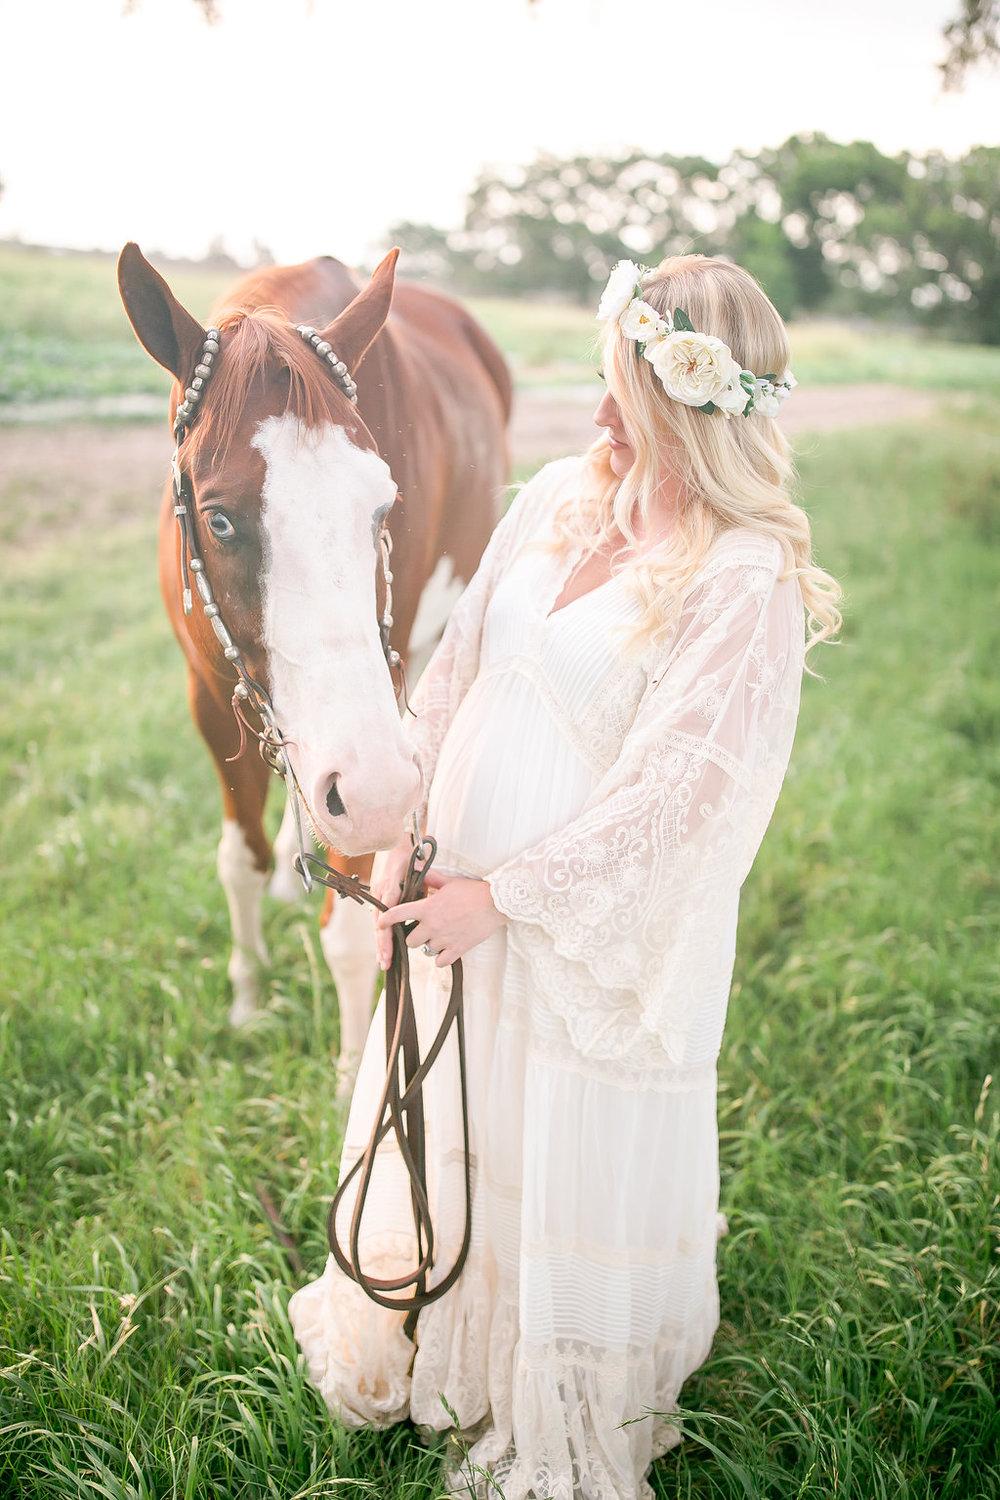 Gorgeous Maternity Style Photography with Horse and Flower Crown ... e846ae52bb2